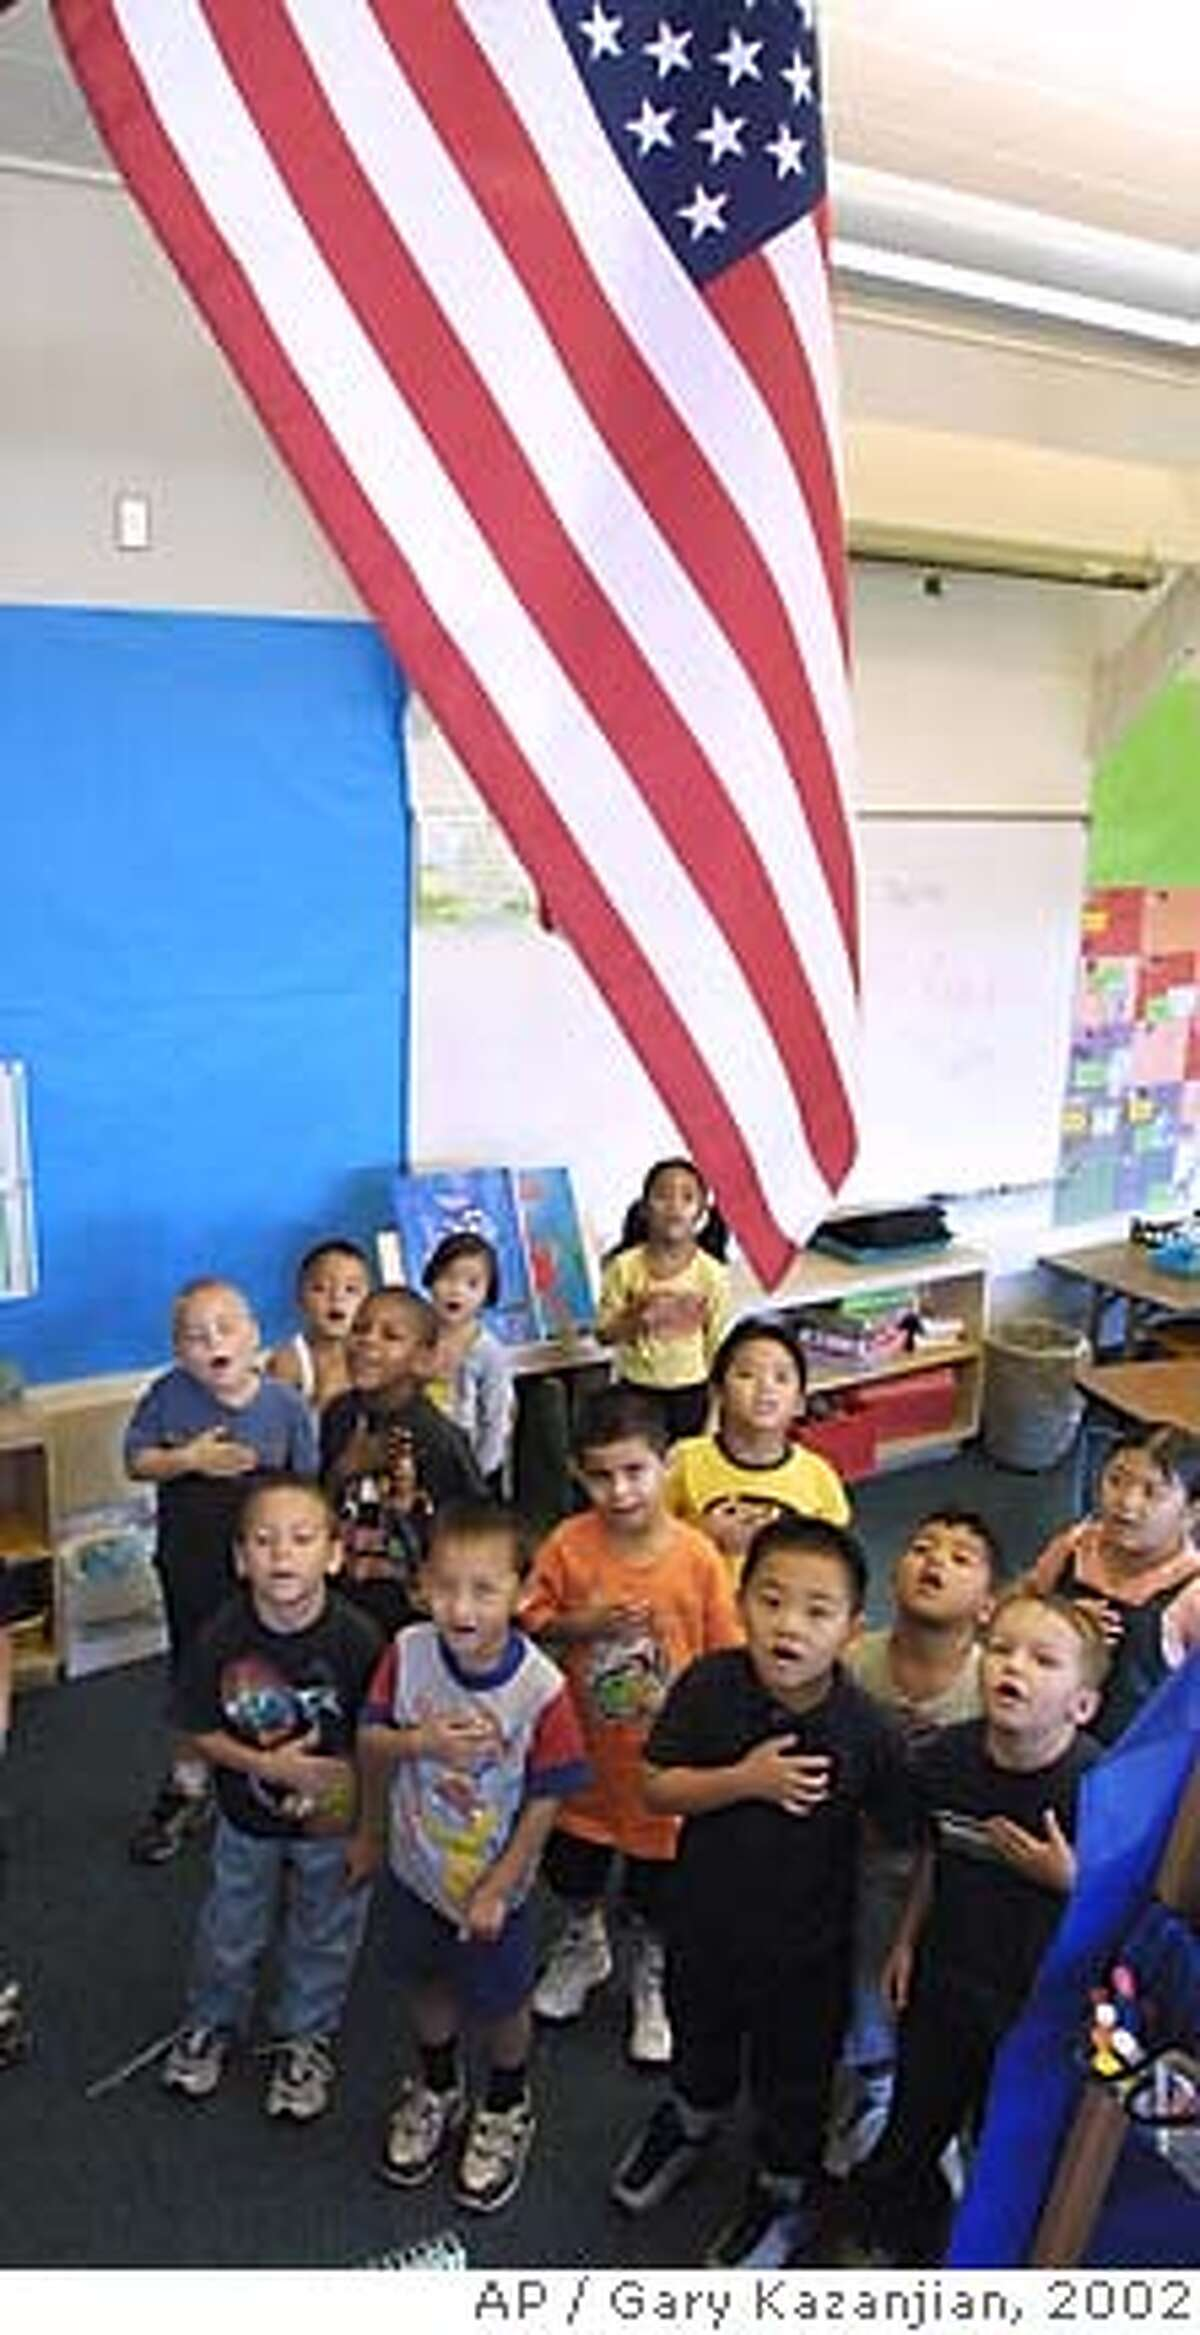 Kindergartners at Mayfair Elementary recite the Thursday, June 27, 2002 in Fresno, Calif. The Ninth Circuit Court of Appeals in California ruled Wednesday that reciting the in schools is unconstitutional, but one of the two judges who issued the ruling came out with another order that will keep the decision from taking effect, until the full appeals court can reconsider it. (AP Photo/Gary Kazanjian)